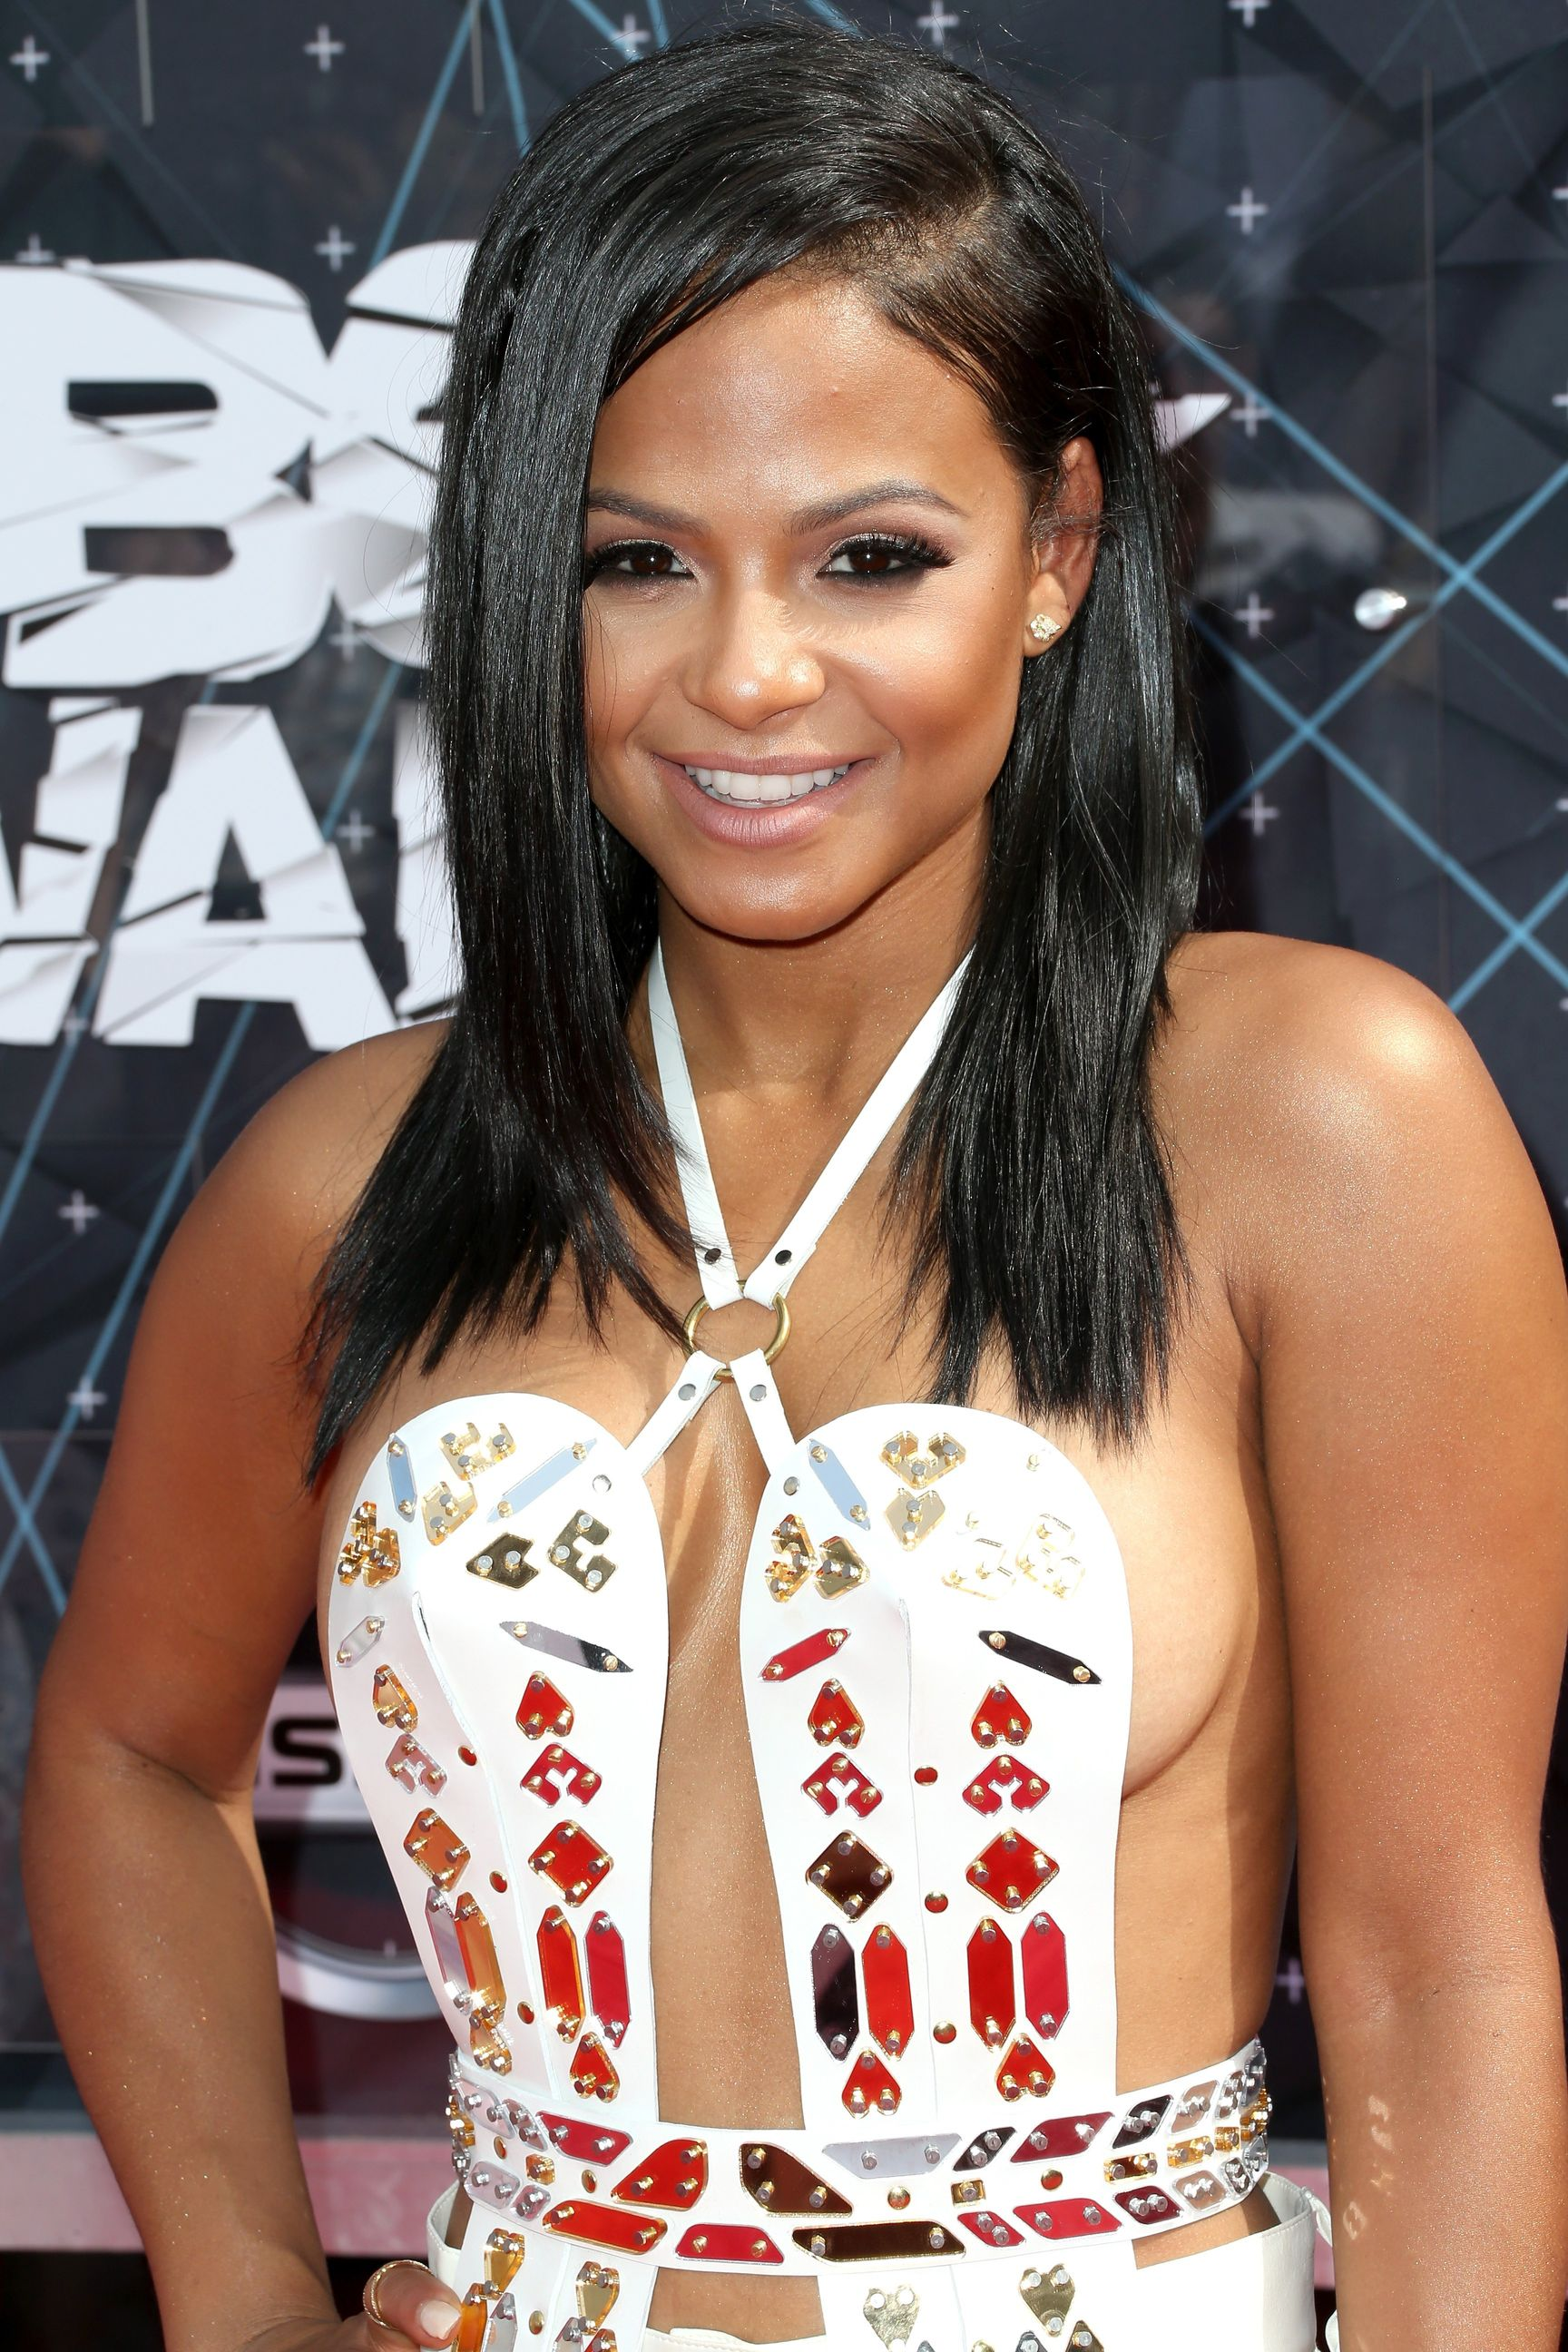 Christina Milian Braless